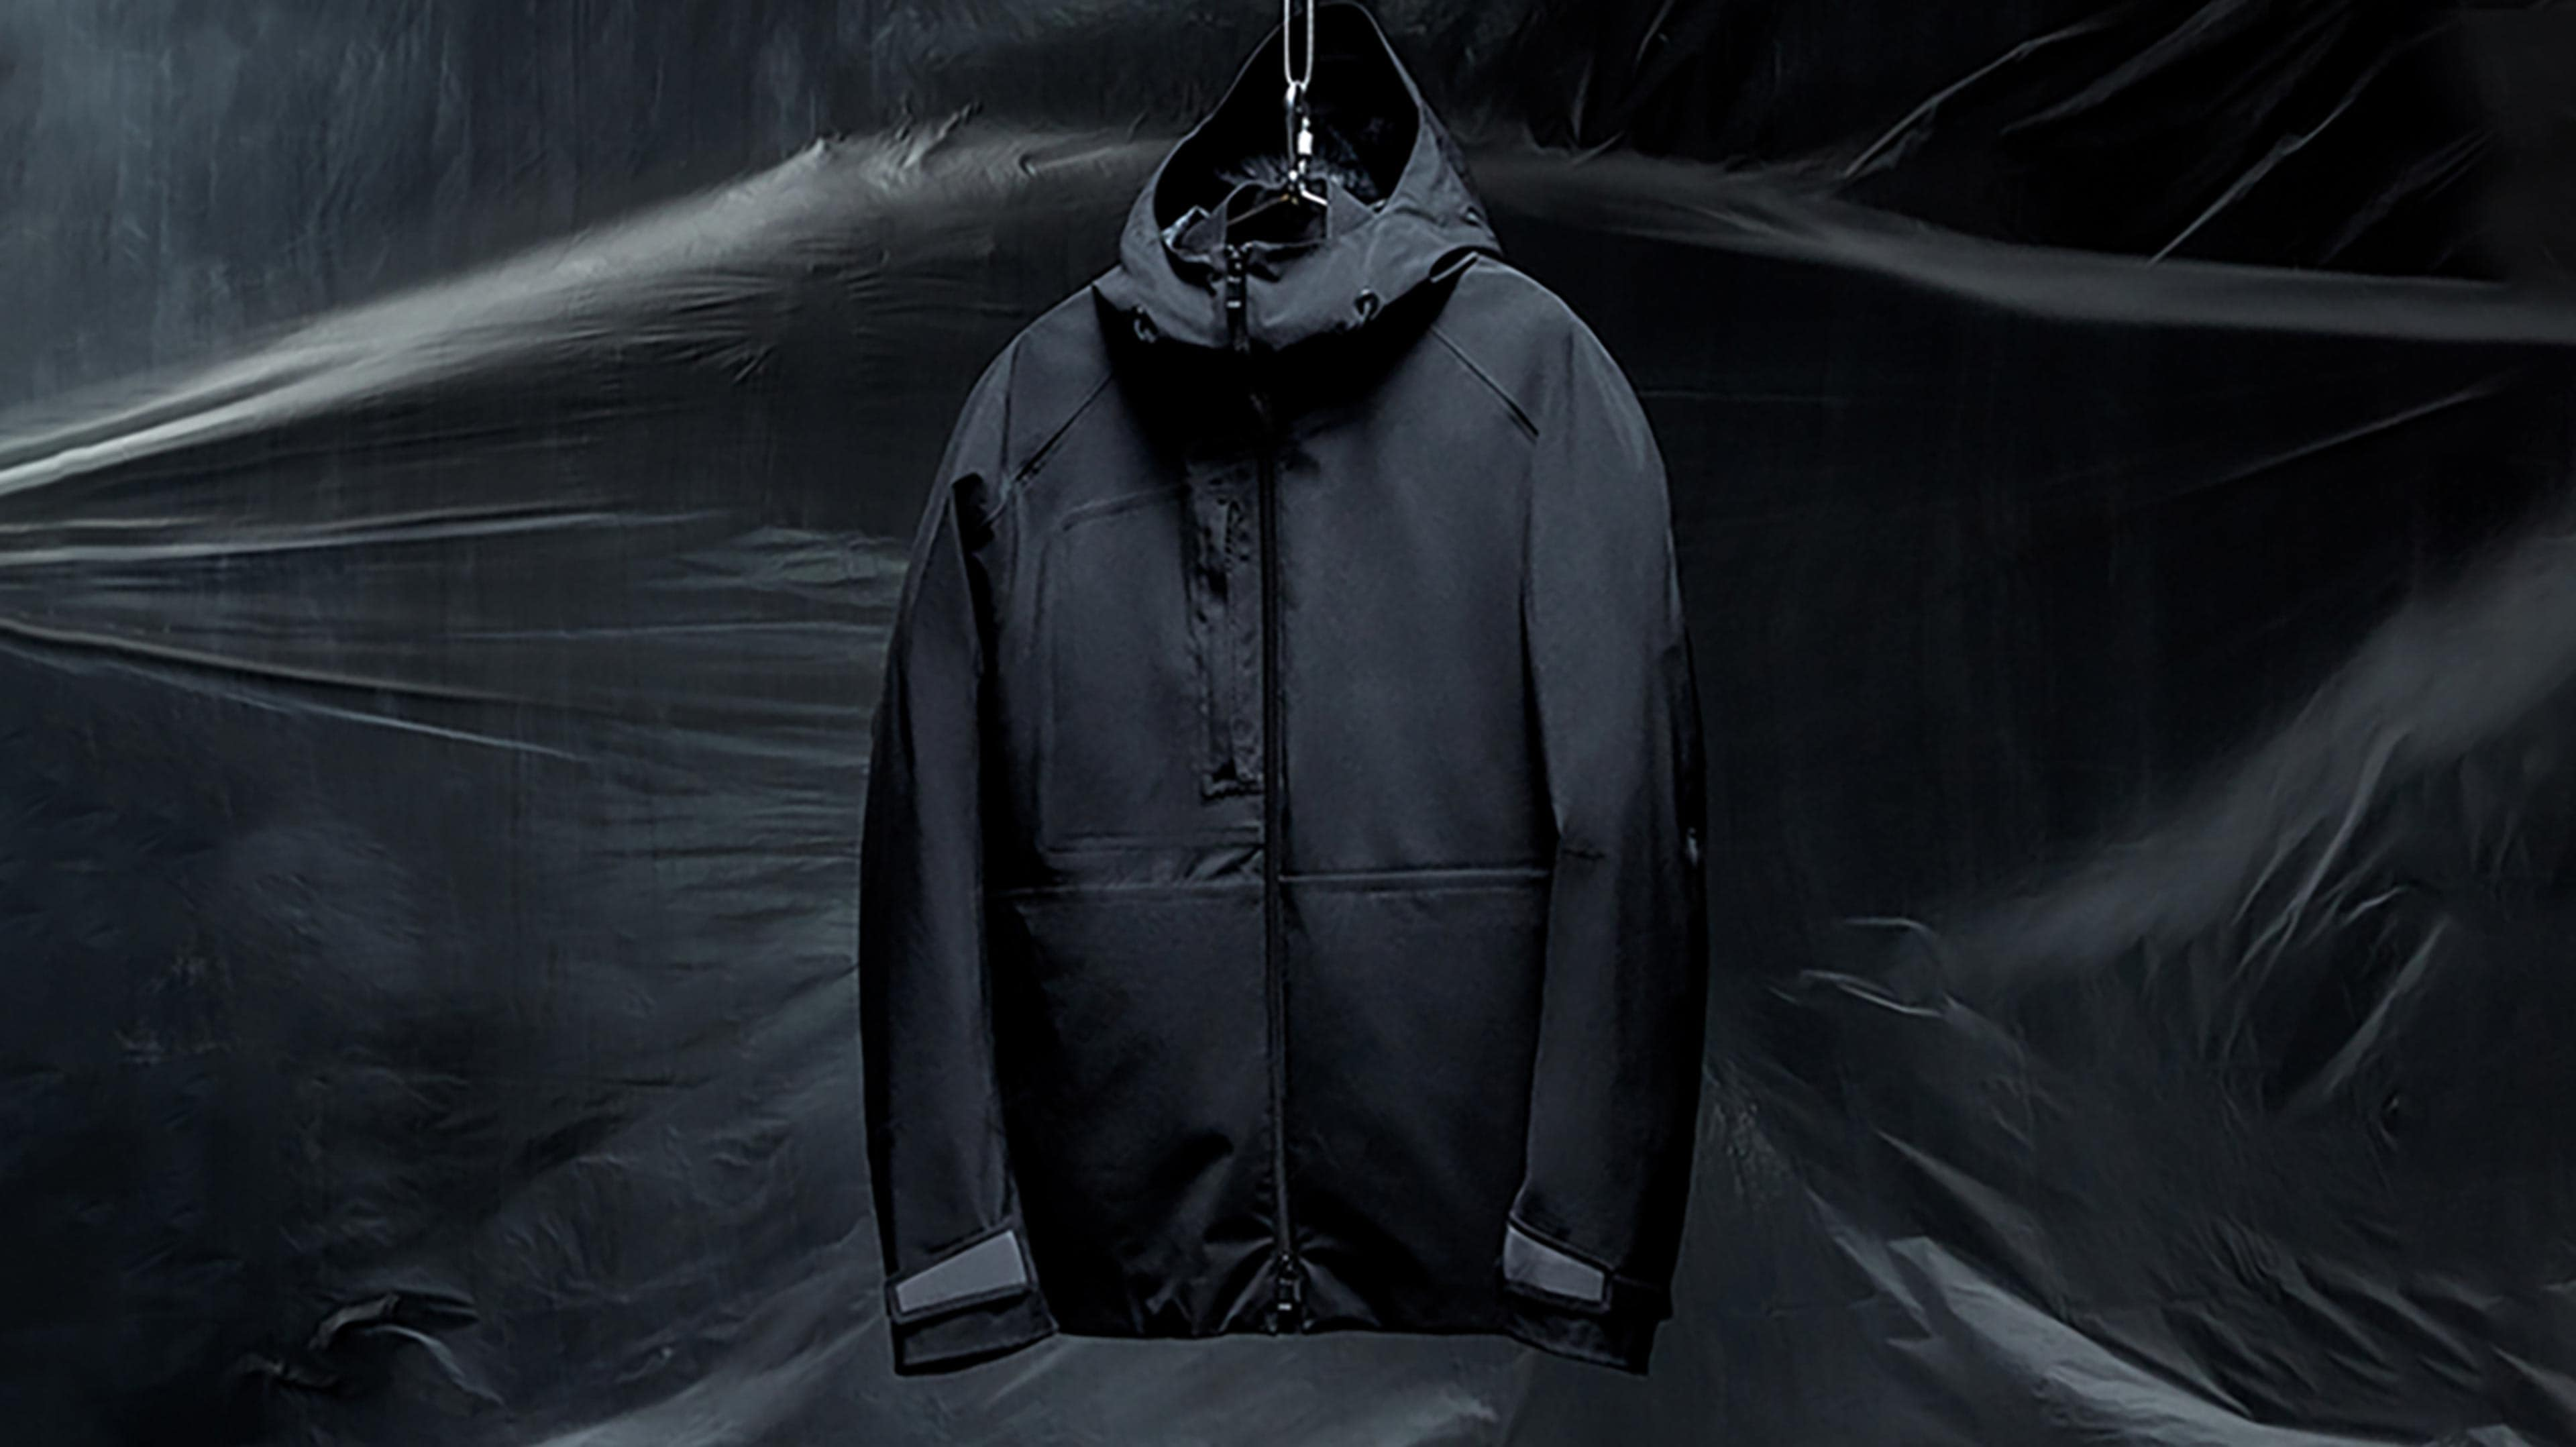 Care and maintenance instructions for your electric warming jacket | Zegna